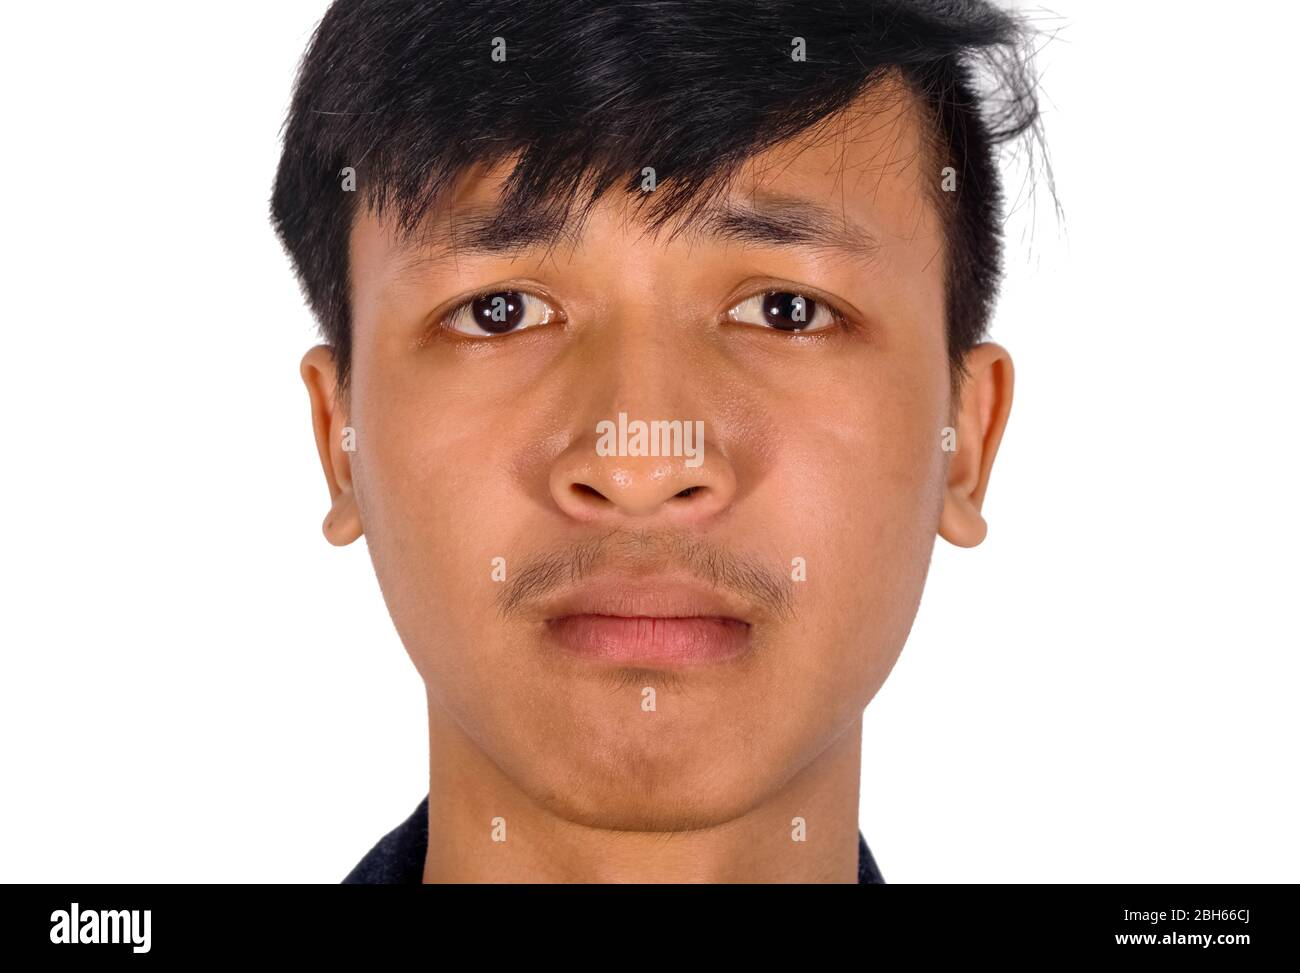 Disgusted Face High Resolution Stock Photography And Images Alamy Download 678 disgusted face stock illustrations, vectors & clipart for free or amazingly low rates! https www alamy com the photo of an asian man makes disgusted face image354793282 html